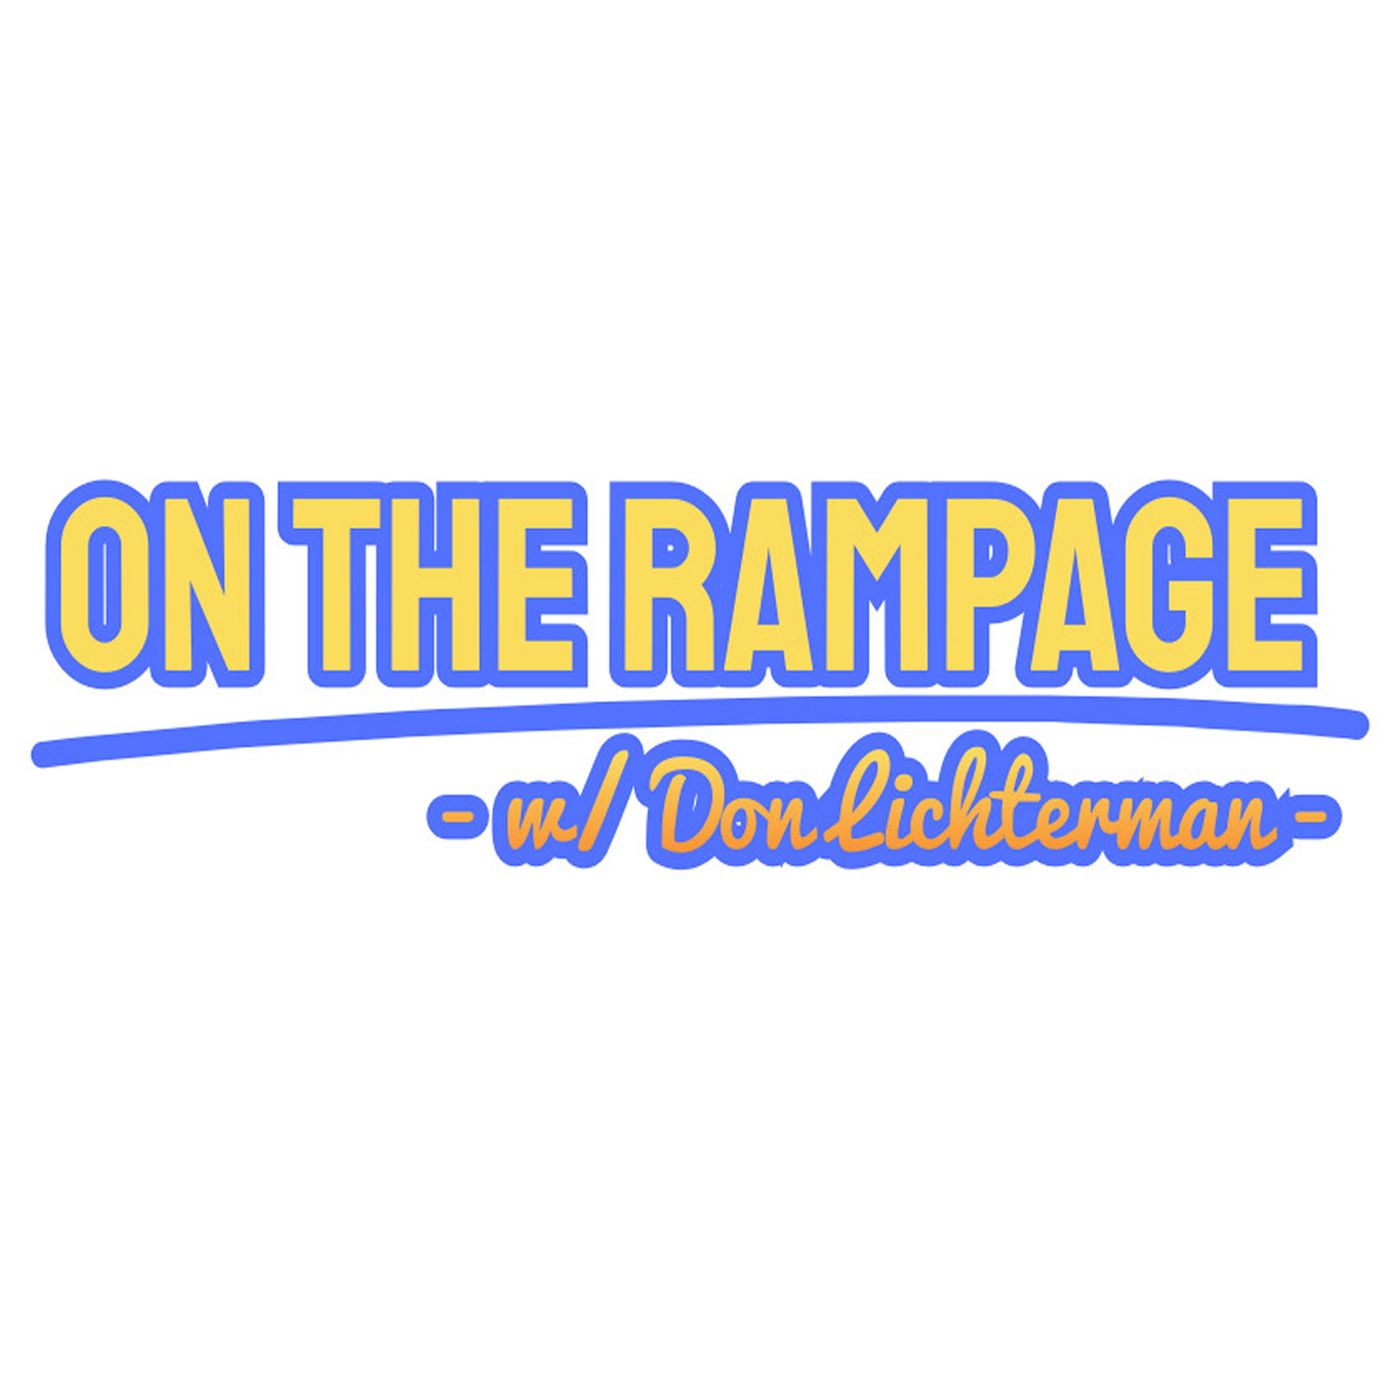 On The Rampage w/ Don Lichterman, Coronavirus Craze, Big 10 Champs, Rams Logo, Great Barrier Reef...